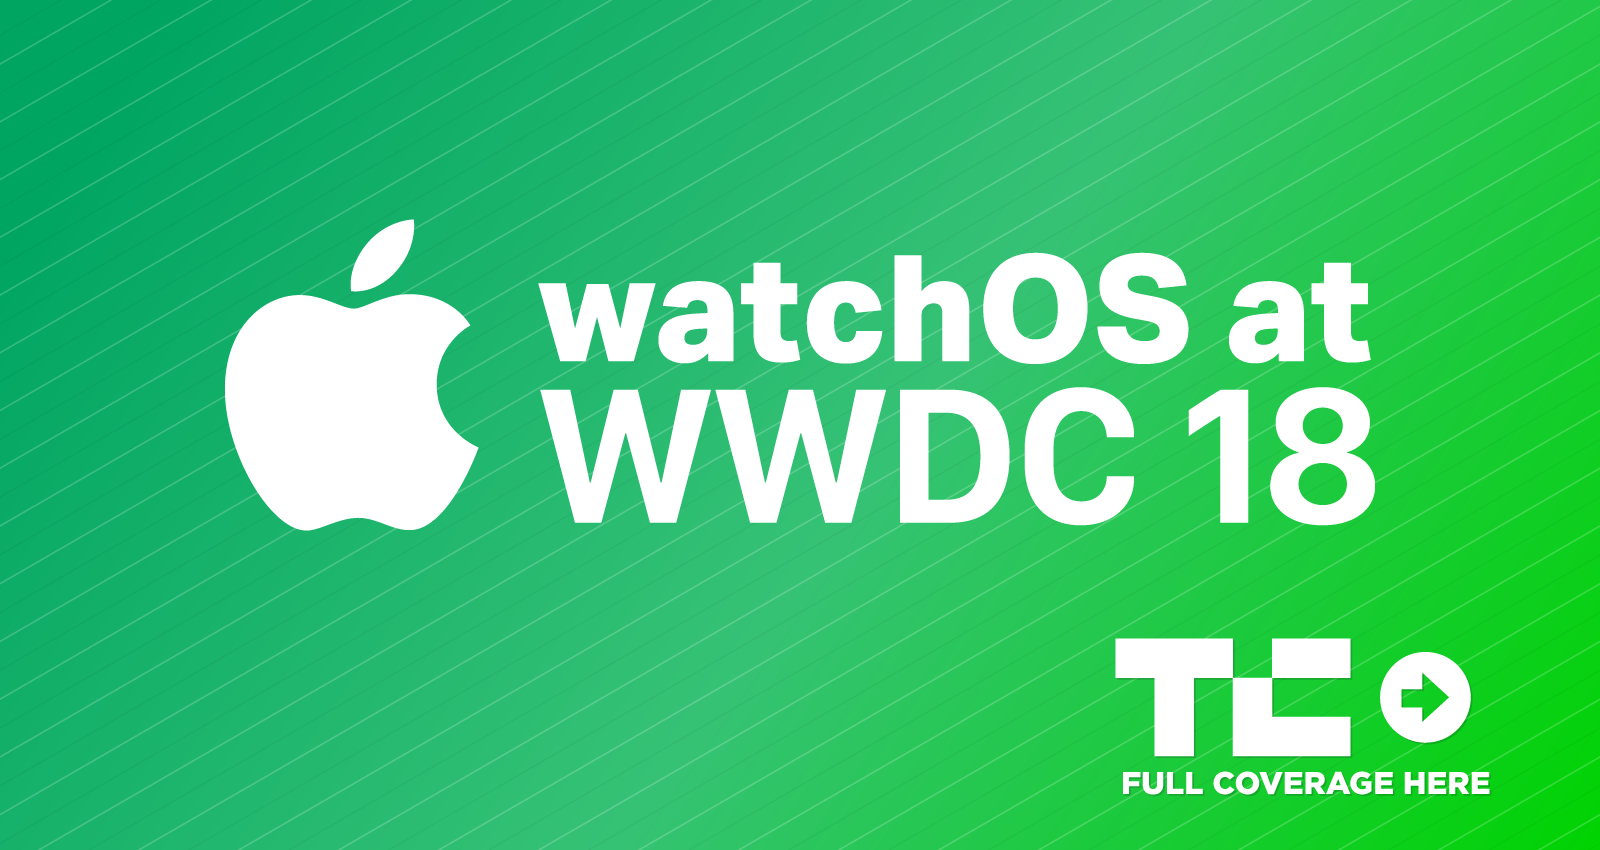 Apple's watchOS 5 is coming with a long list of improvements